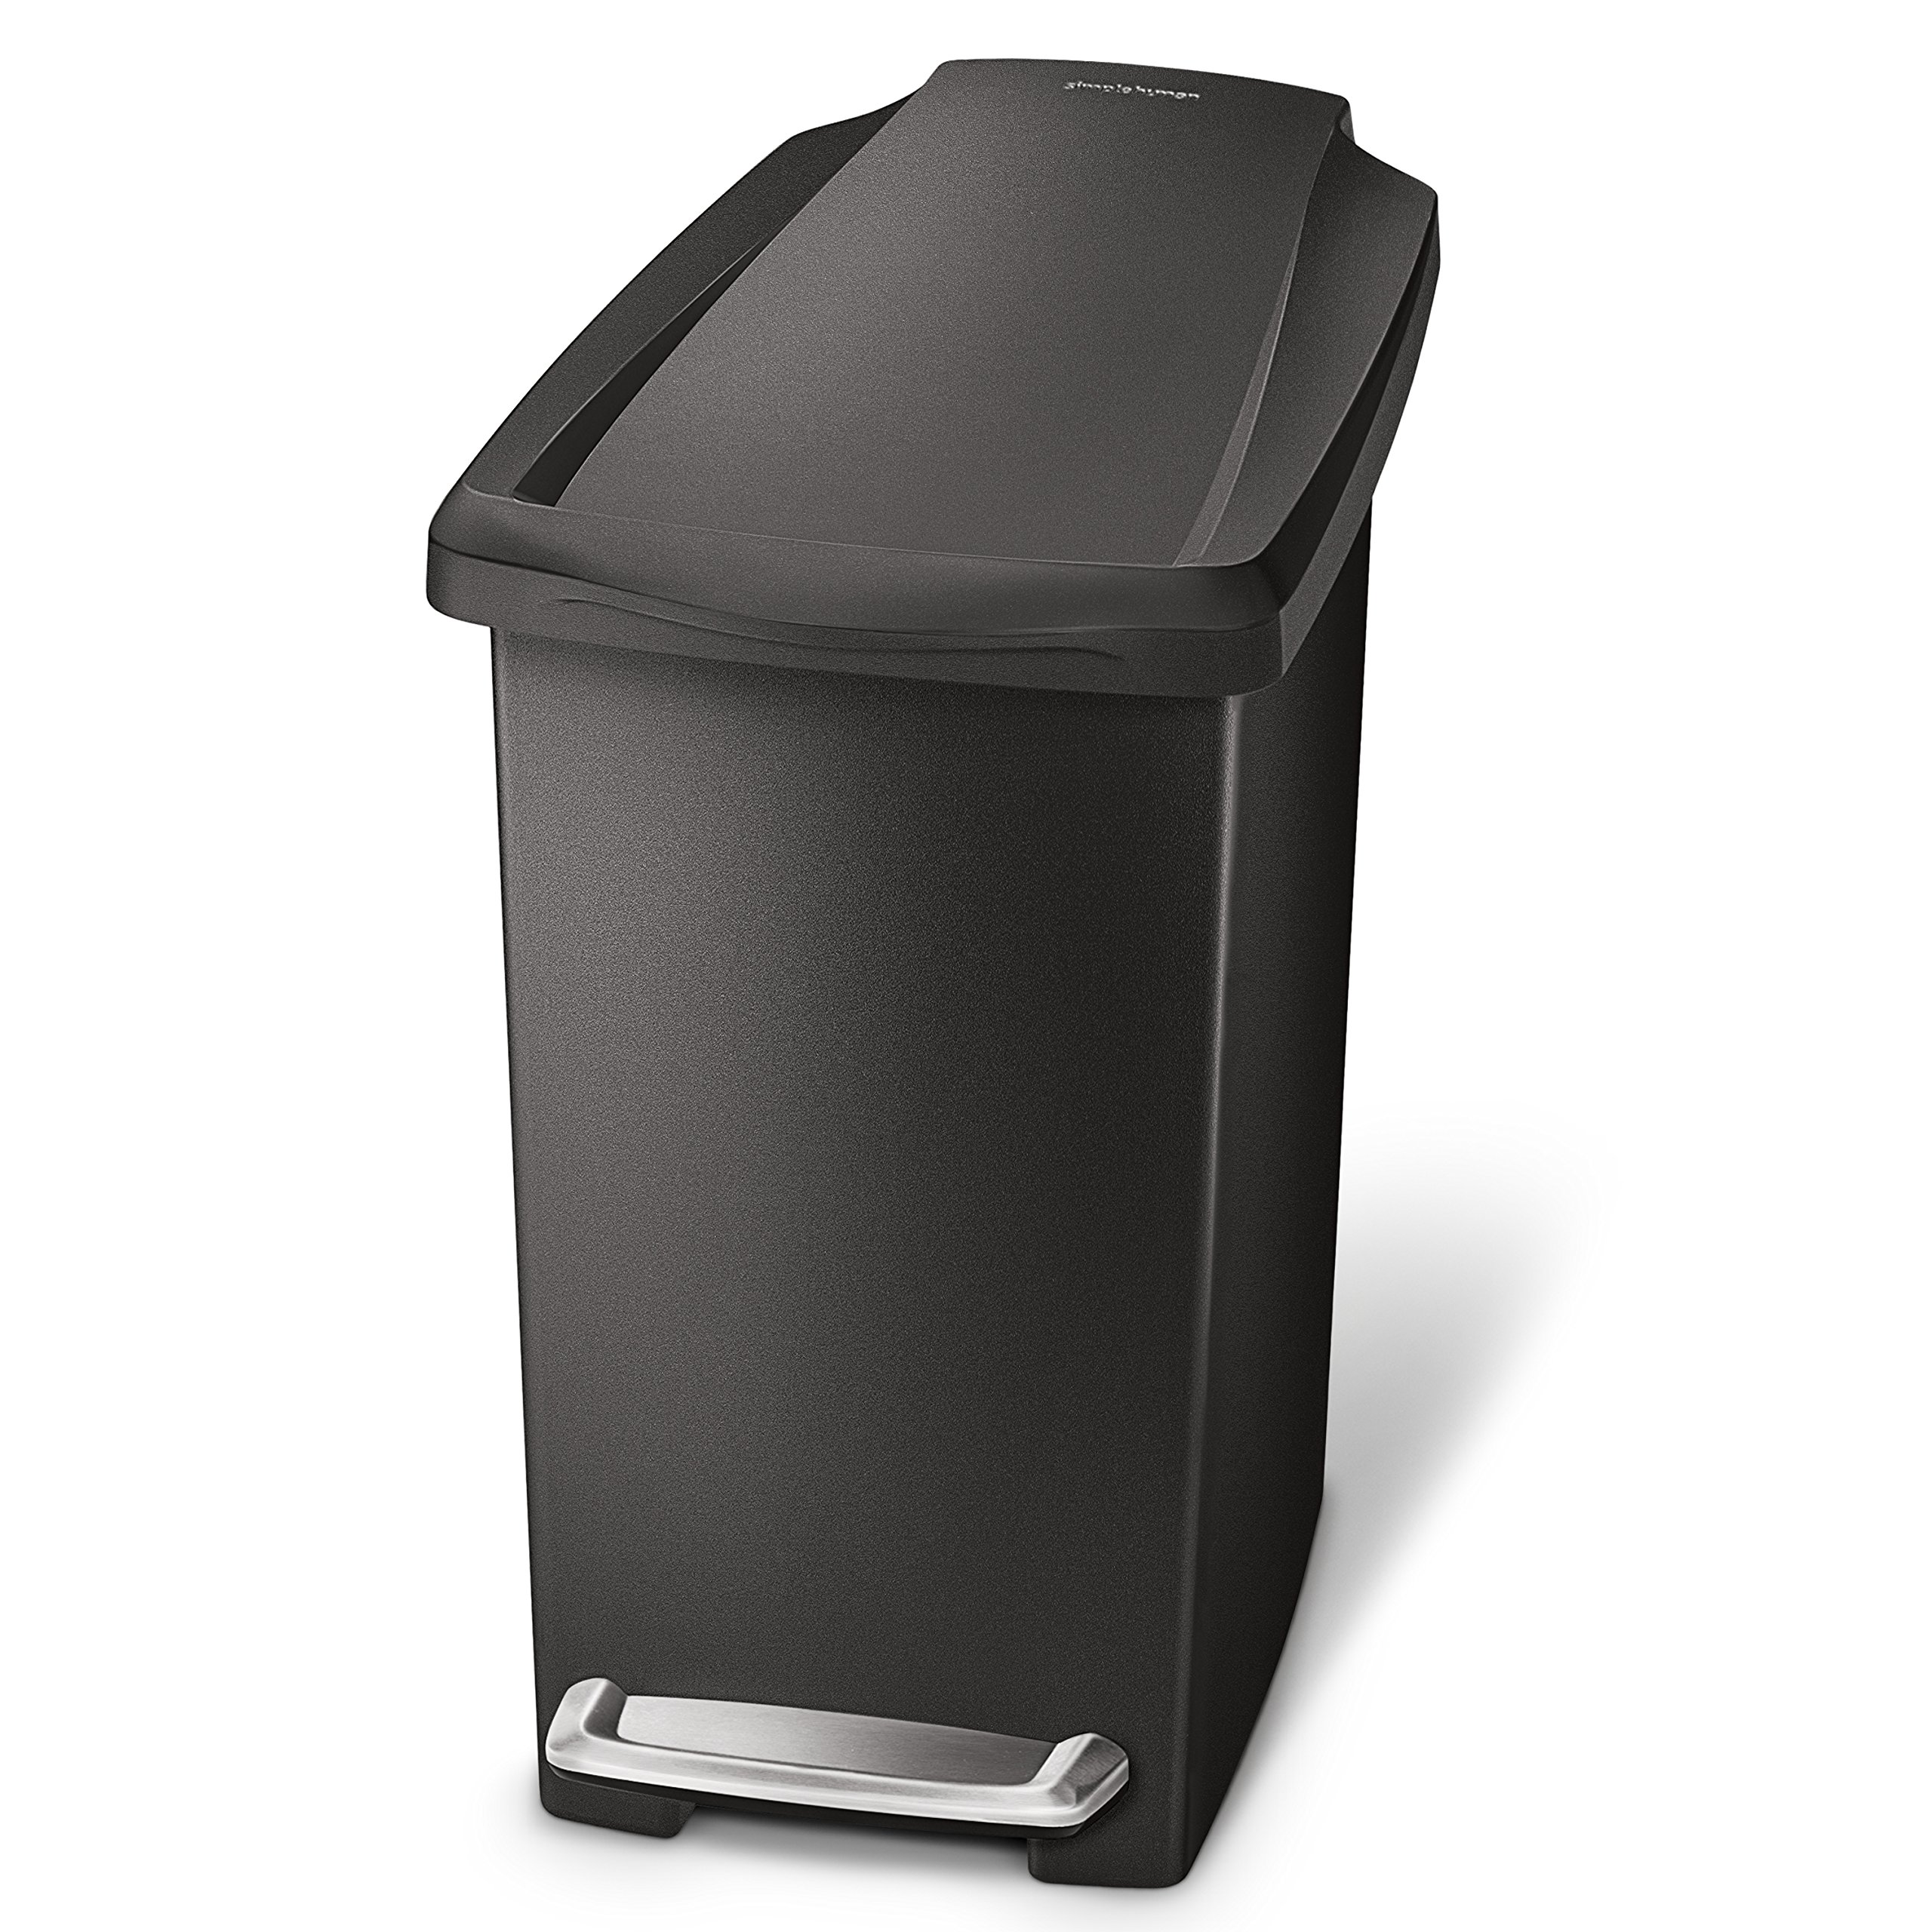 simplehuman 10 Liter/2.6 Gallon Compact Slim Bathroom or Office Step Trash Can, Black Plastic